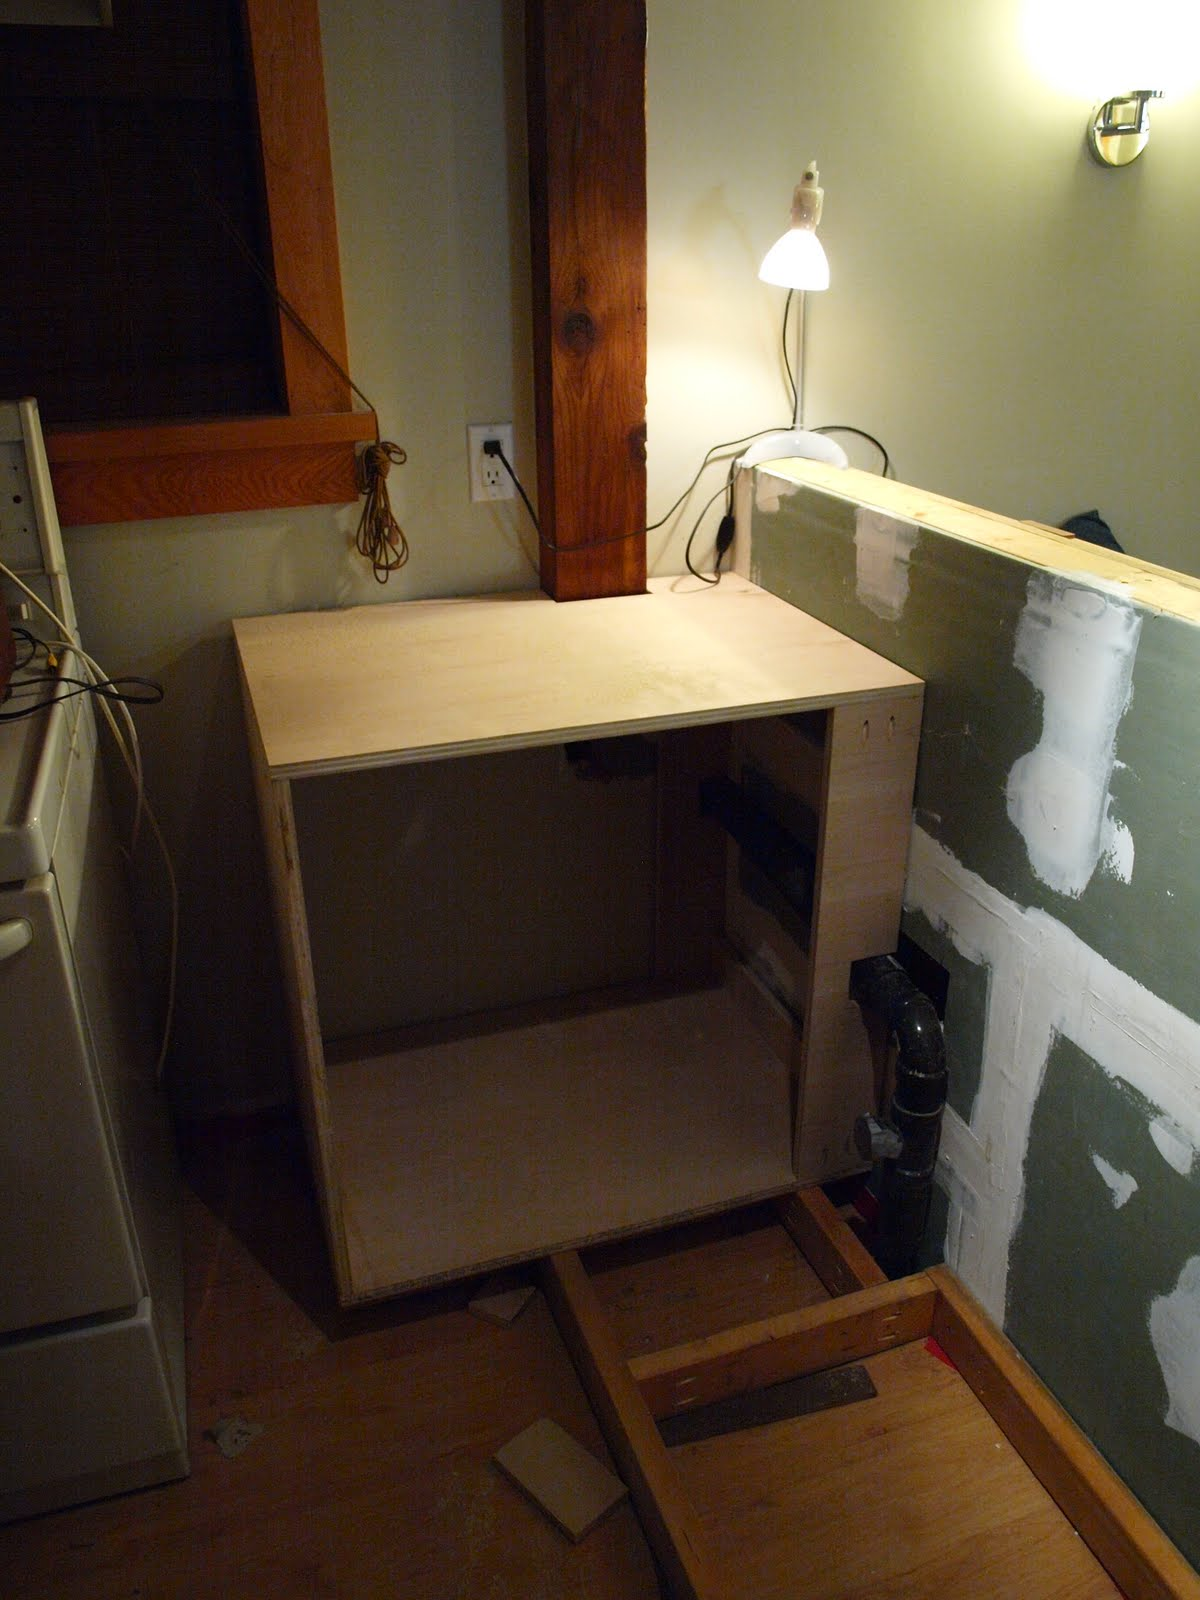 Here's the corner cabinet, which I built first, after building and